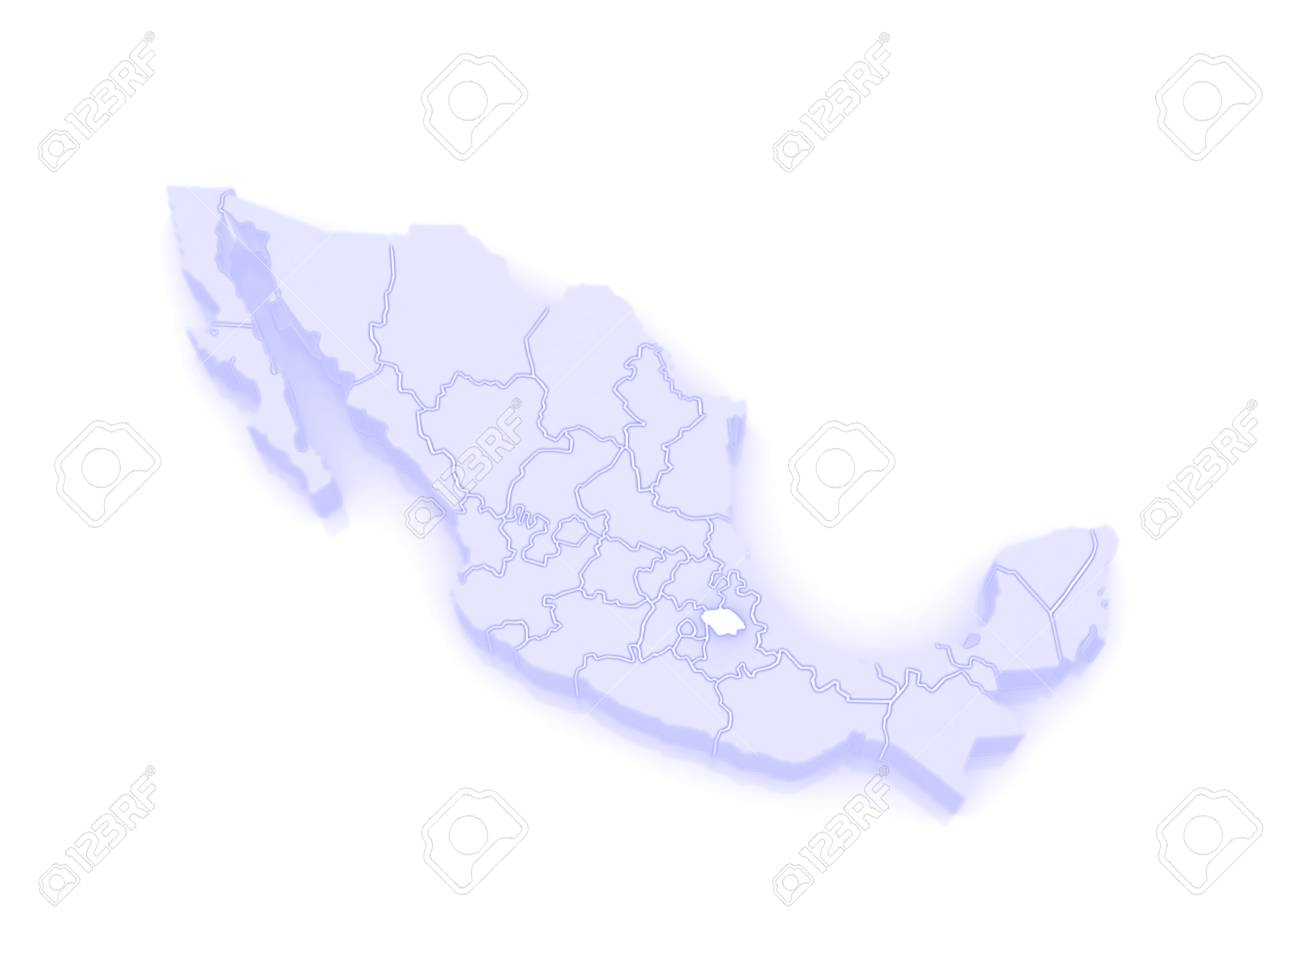 Map Of Tlaxcala Mexico 3d Stock Photo Picture And Royalty Free